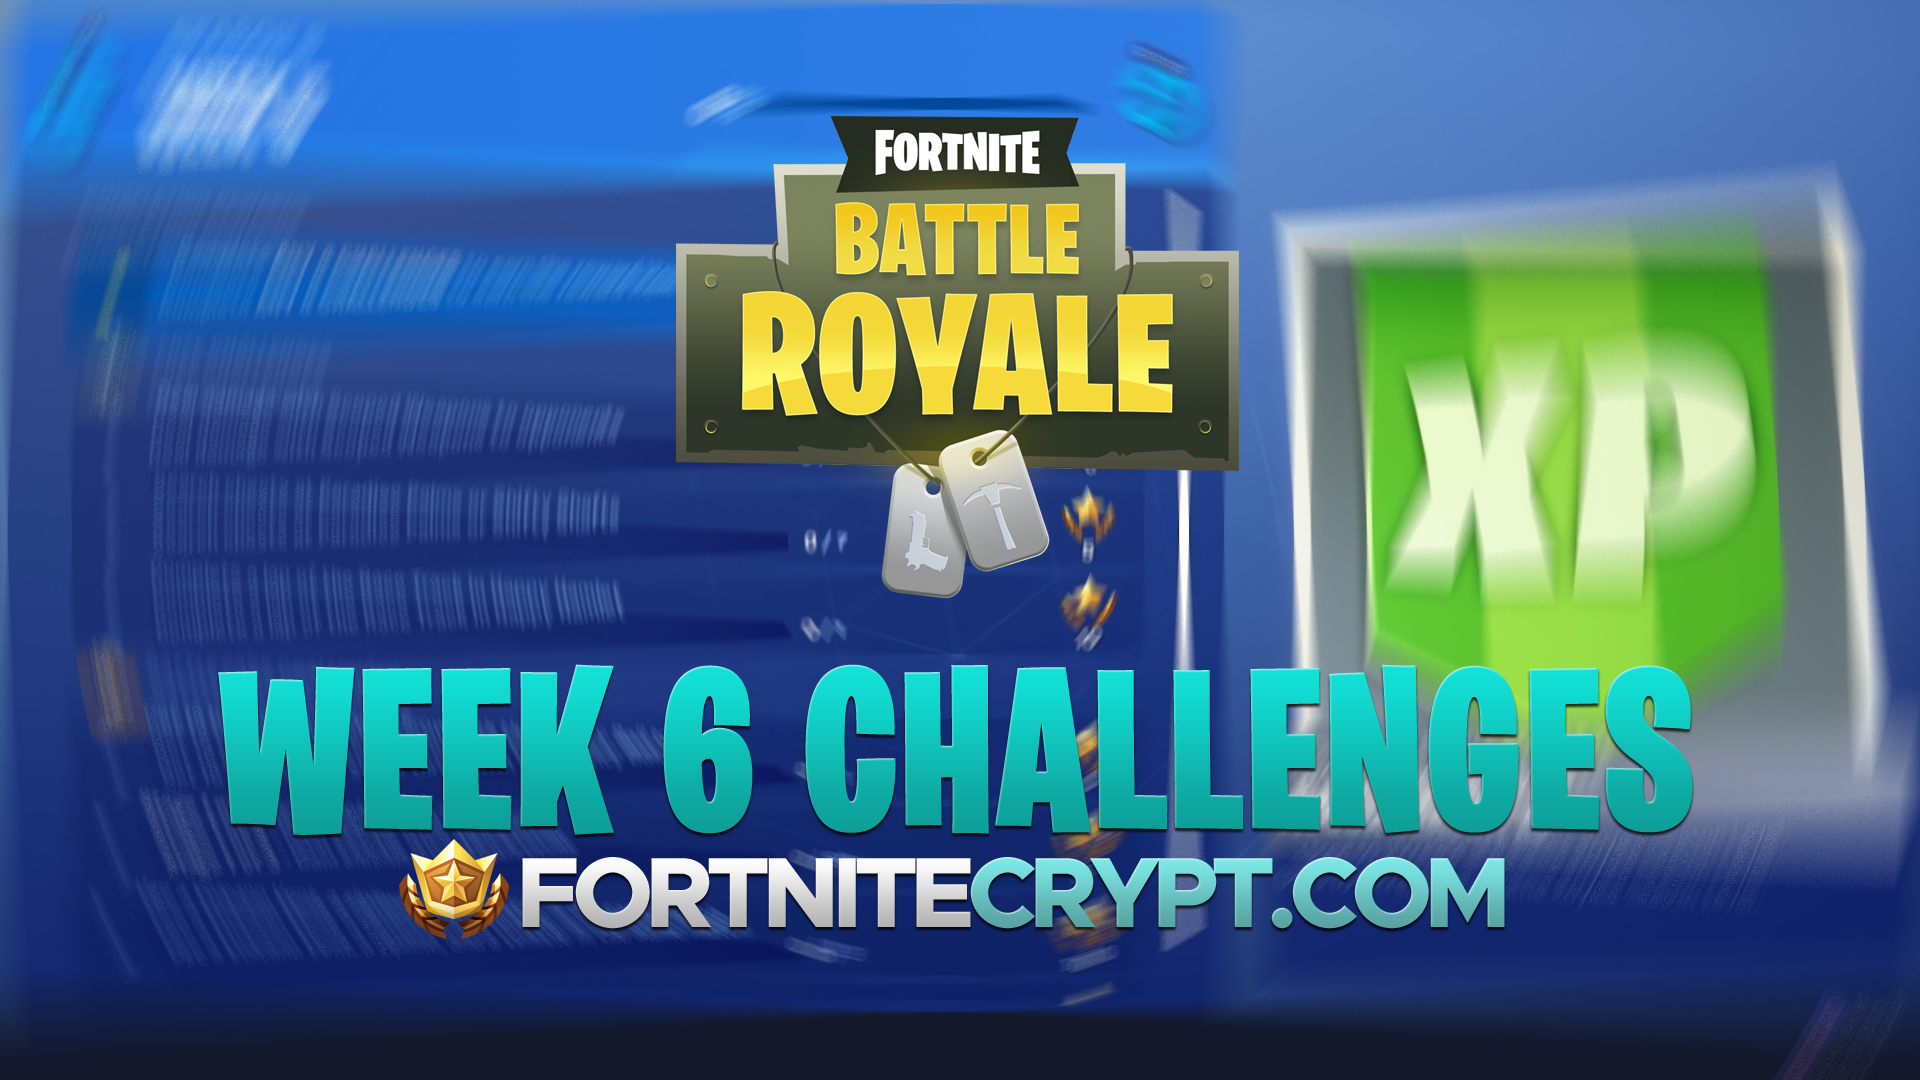 fortnite week 6 challenges of the season 8 battle pass are here including the visit highest elevations and the knife point treasure map challenge - fortnite battle pass season 8 week 6